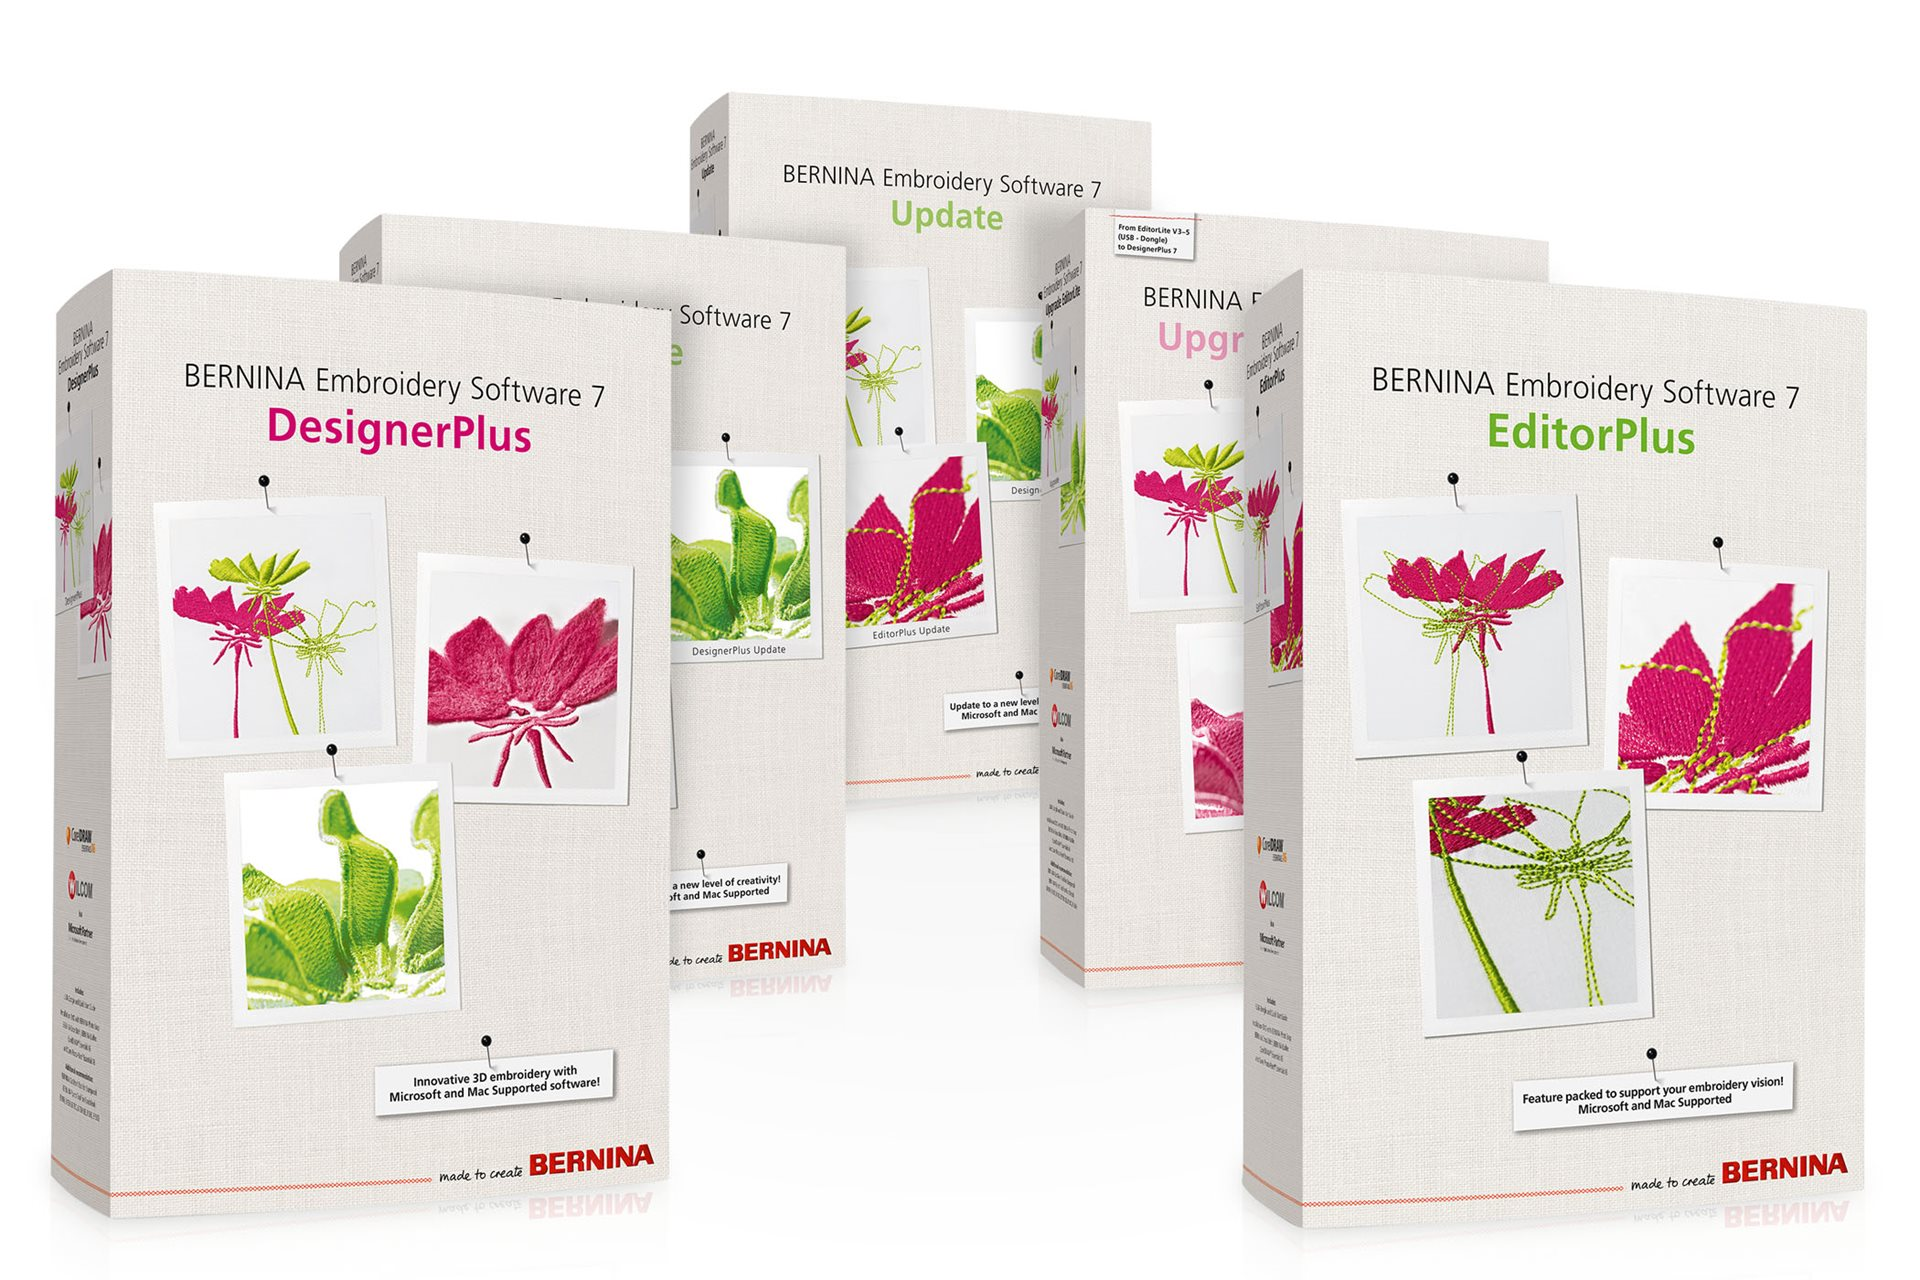 BERNINA Embroidery Software 7